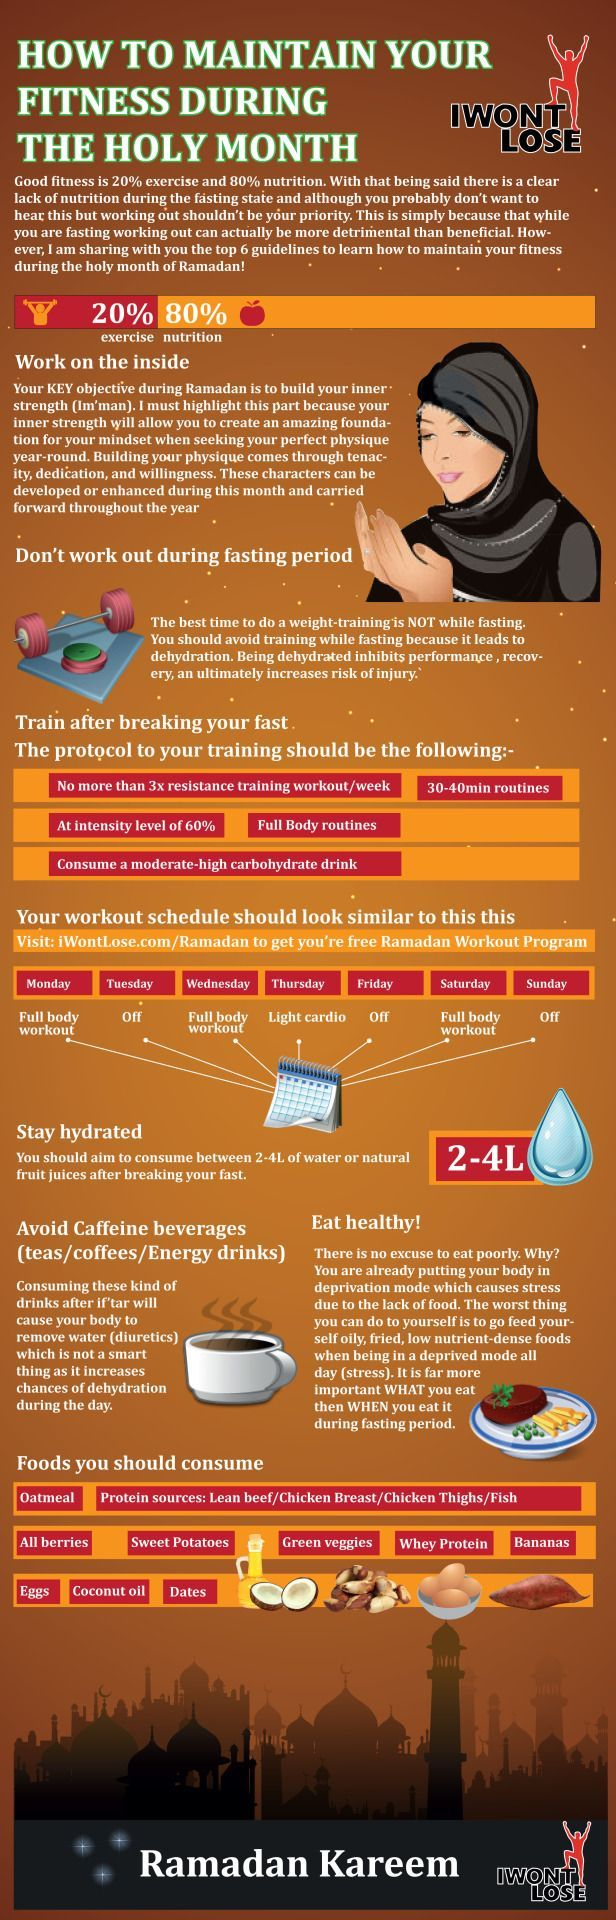 How to Maintain Your Fitness During Ramadanhttp://www.iwontlose.com/ramadan  Ramadan Kareem